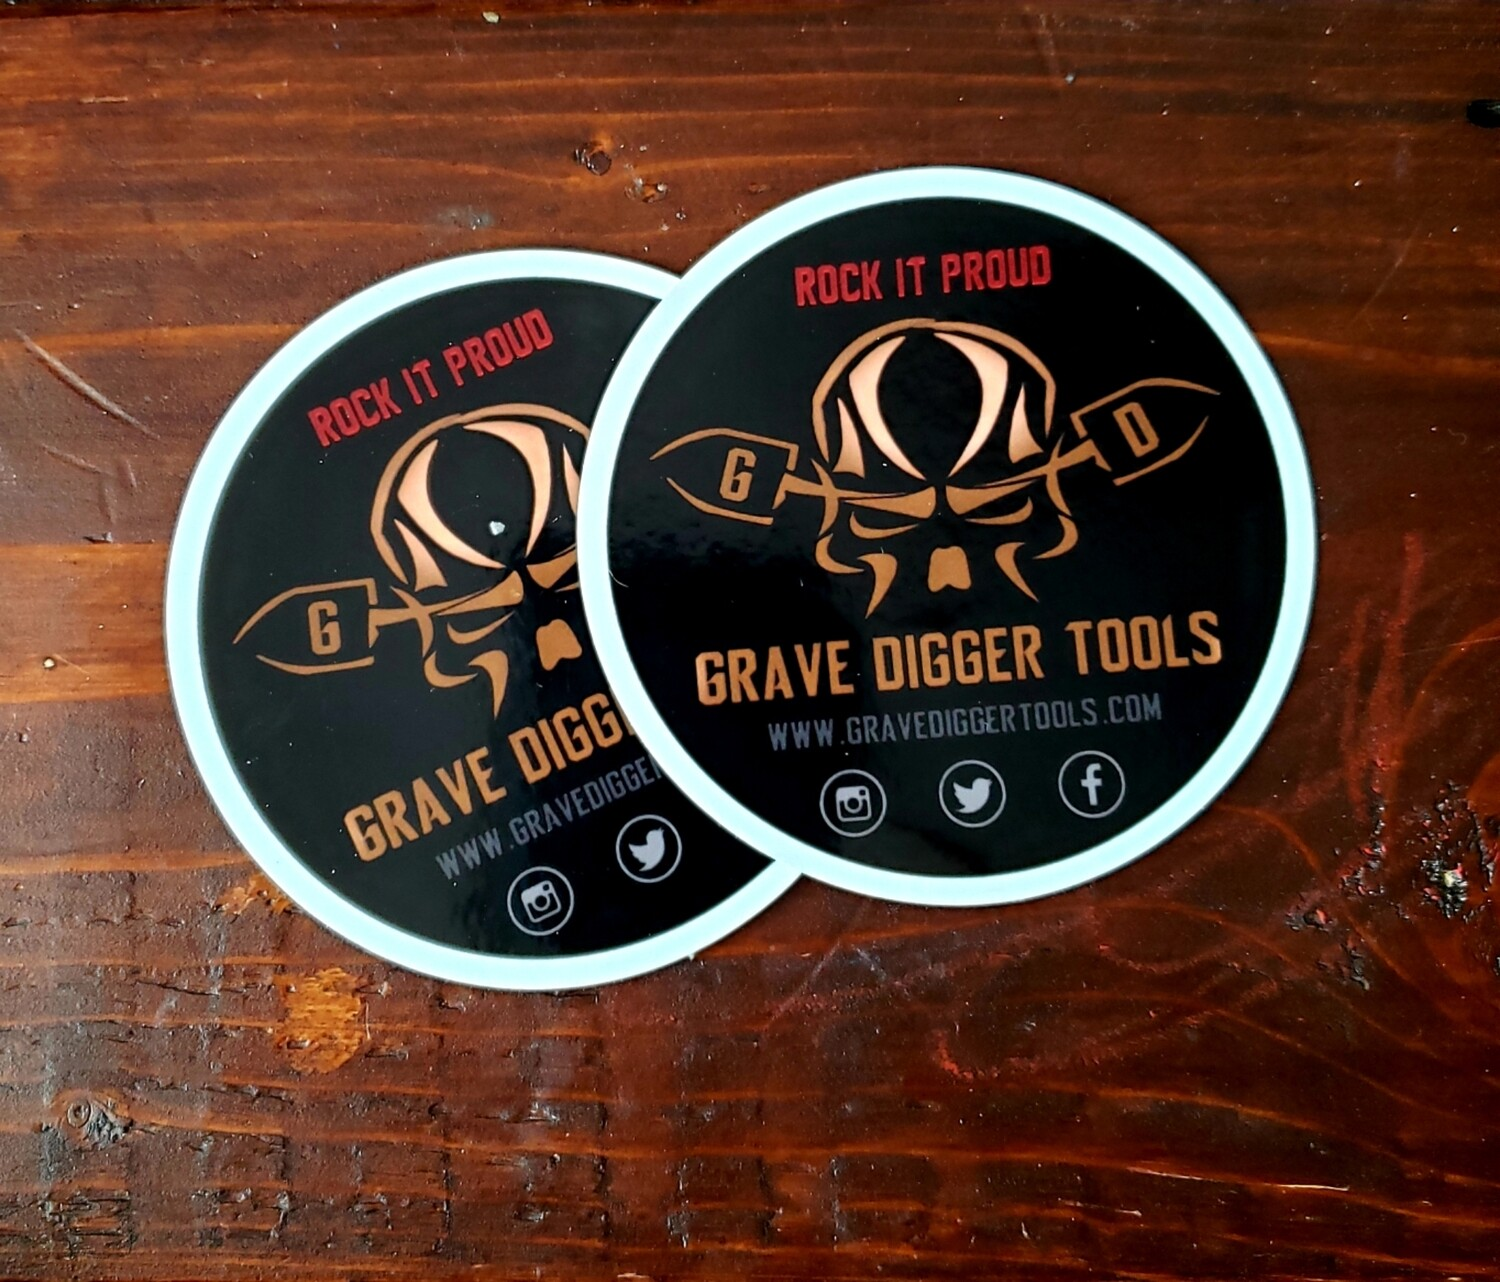 2 - 3x3 Grave Digger Tools Static Window Clings